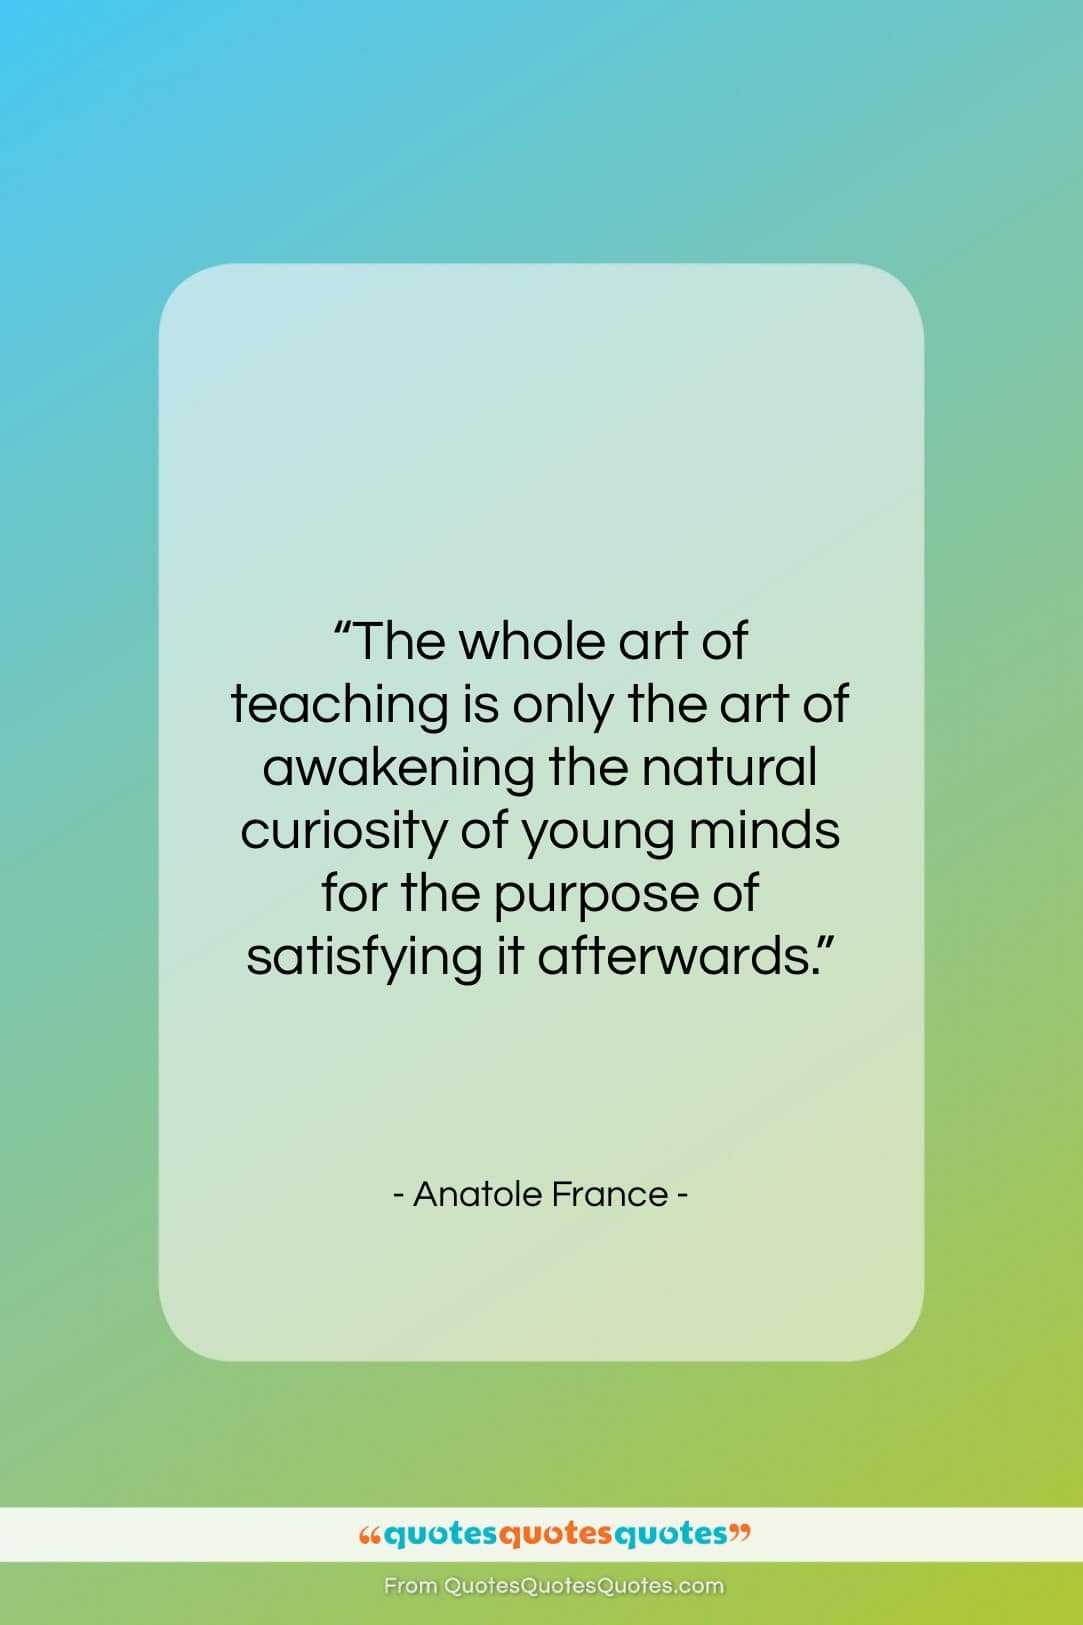 """Anatole France quote: """"The whole art of teaching is only…""""- at QuotesQuotesQuotes.com"""